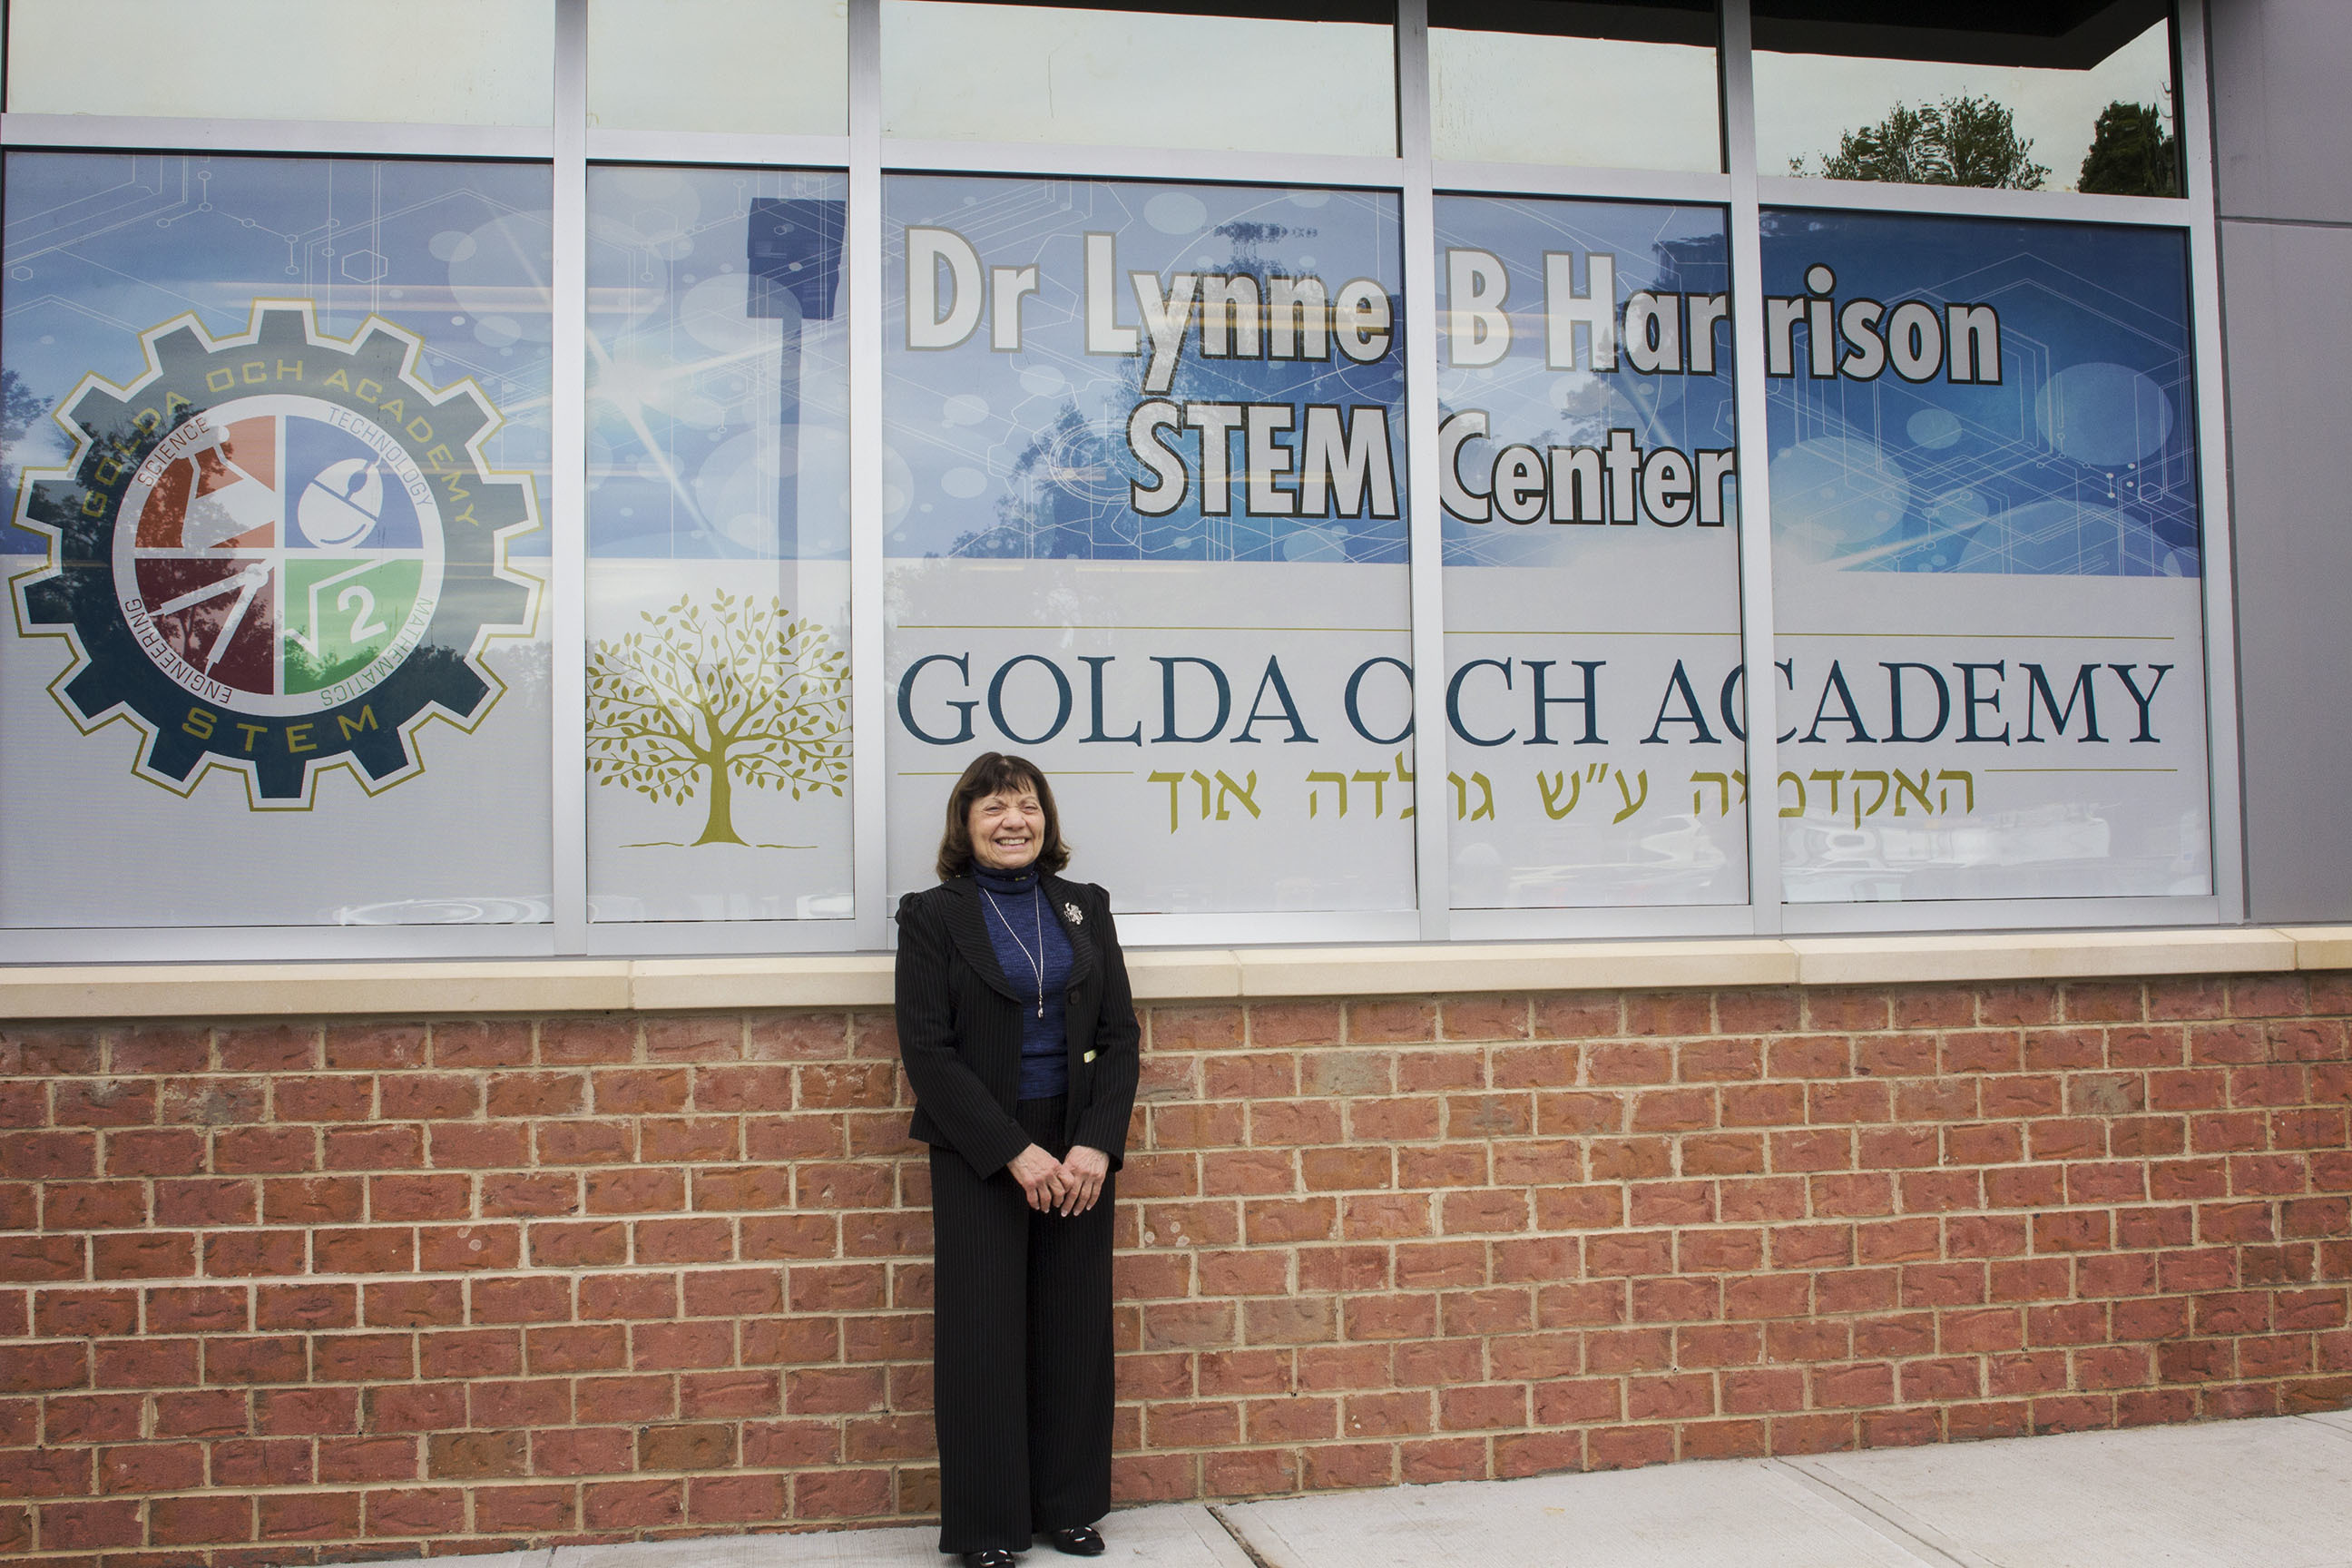 golda och academy celebrates opening of dr lynne b harrison stem west orange nj golda och academy officially celebrated the opening of its brand new state of the art dr lynne b harrison stem science technology